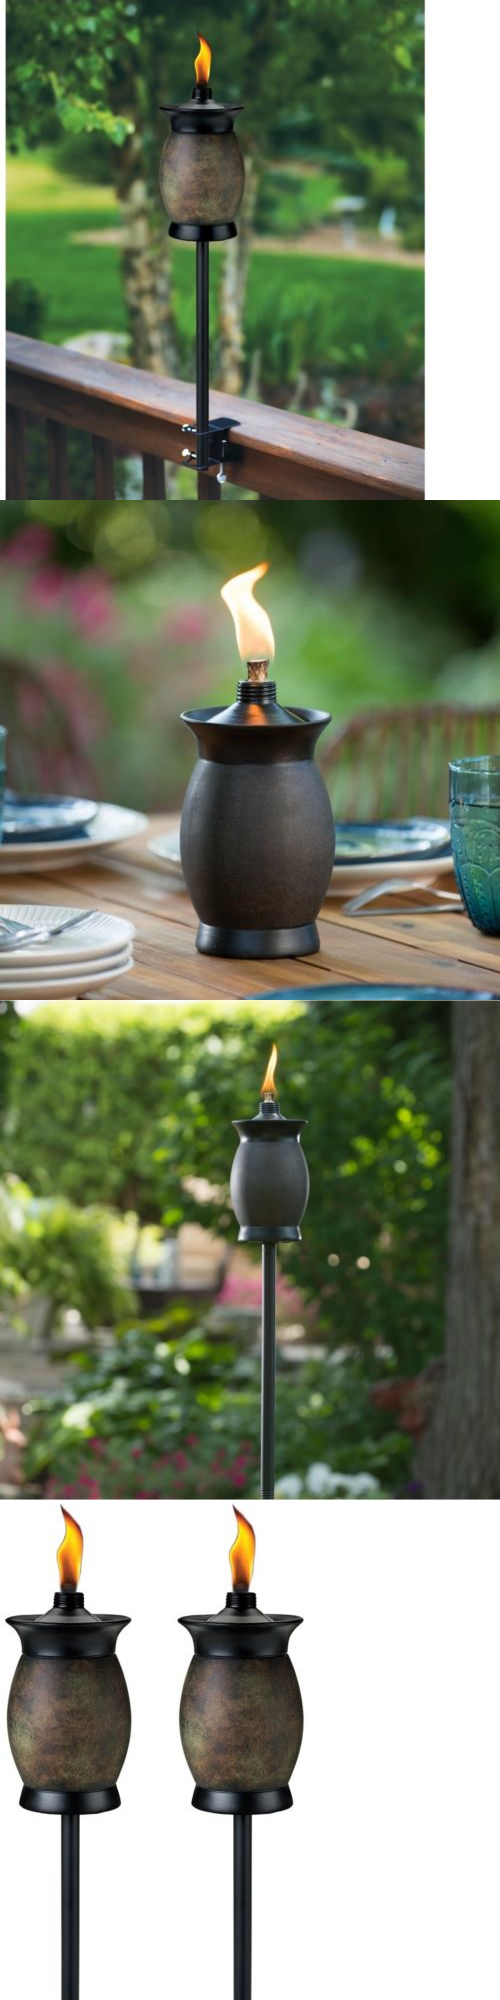 Garden And Patio Torches 183391: Tiki Torch Resin Jar Decor Outdoor  Lighting Table Patio Yard